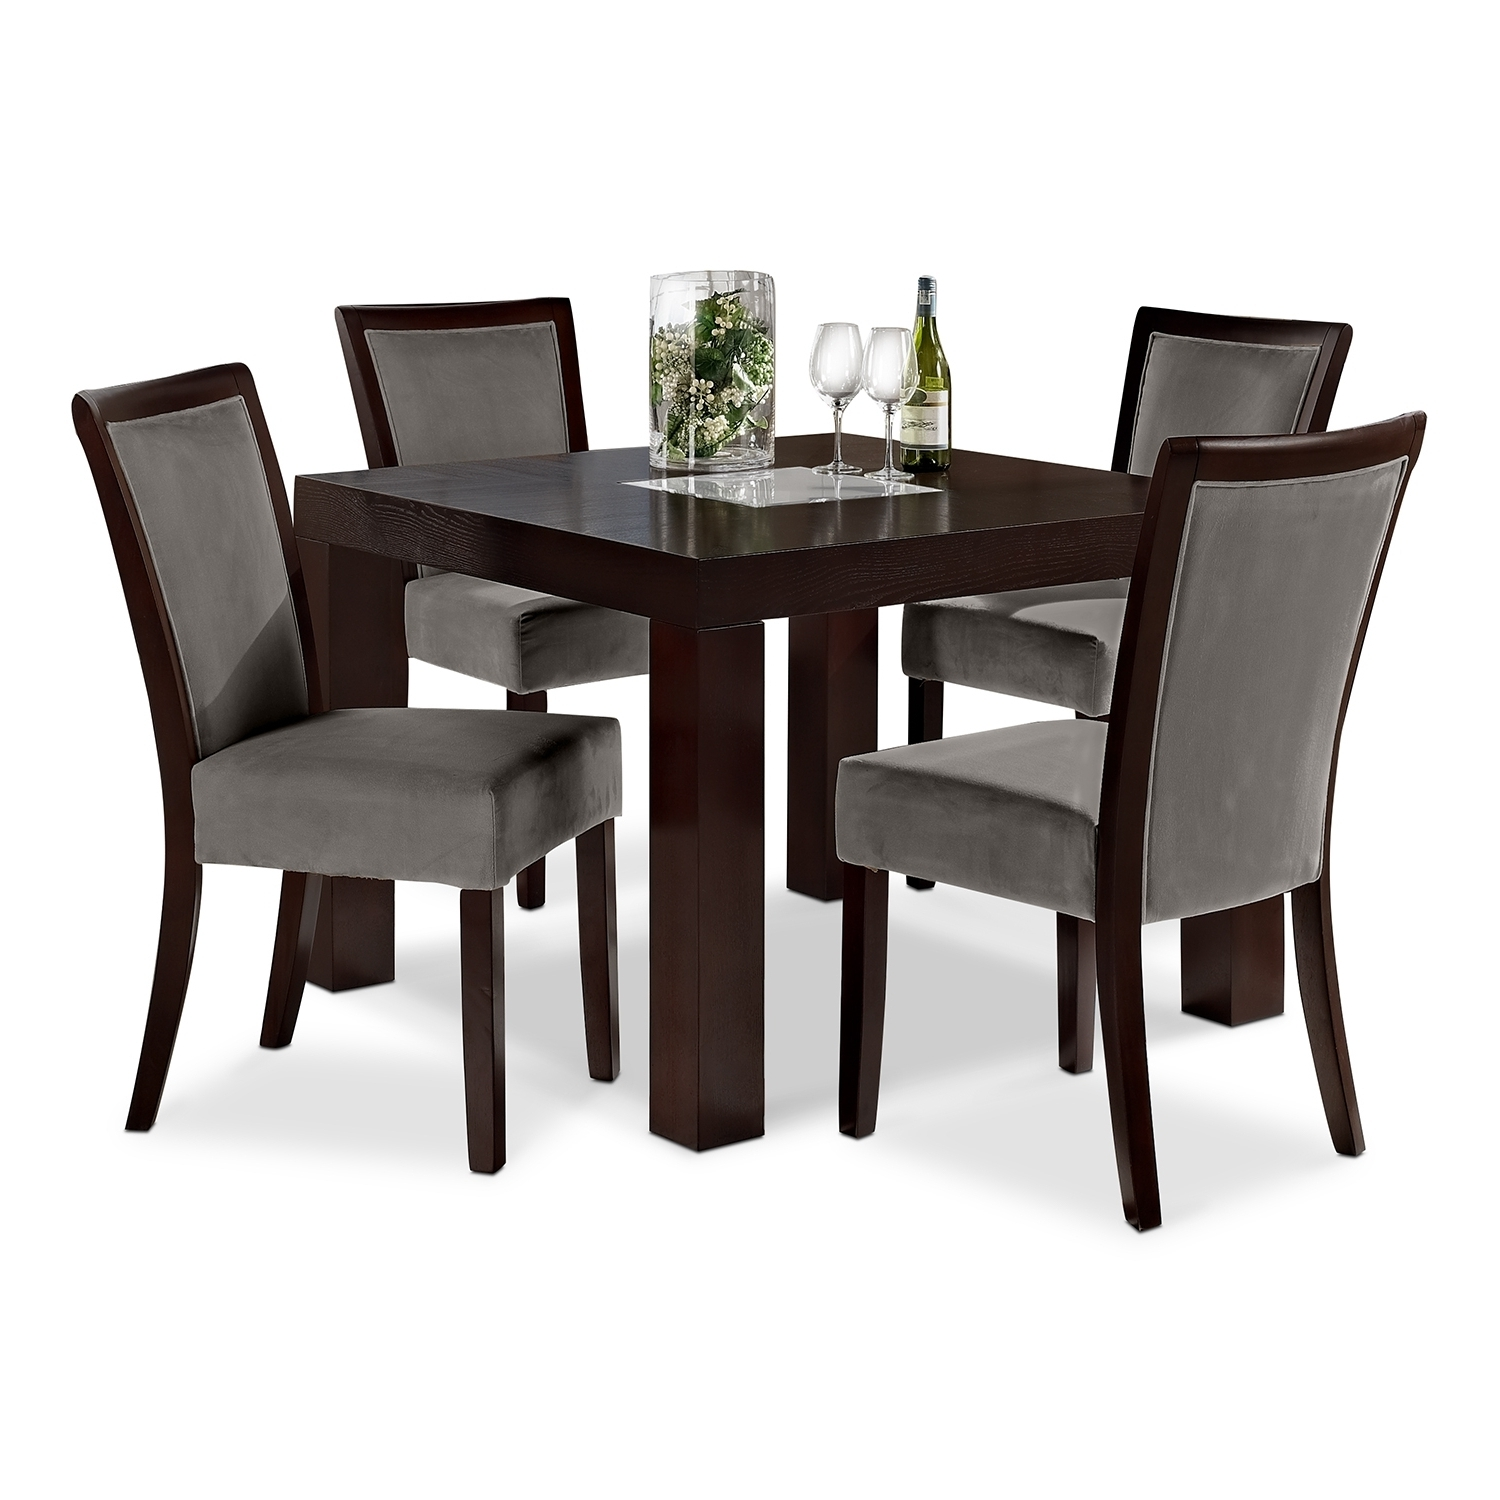 Edmonton Dining Tables With Well Known Magnificent Value City Kitchen Sets Within Kitchen Tables Edmonton (Gallery 20 of 25)